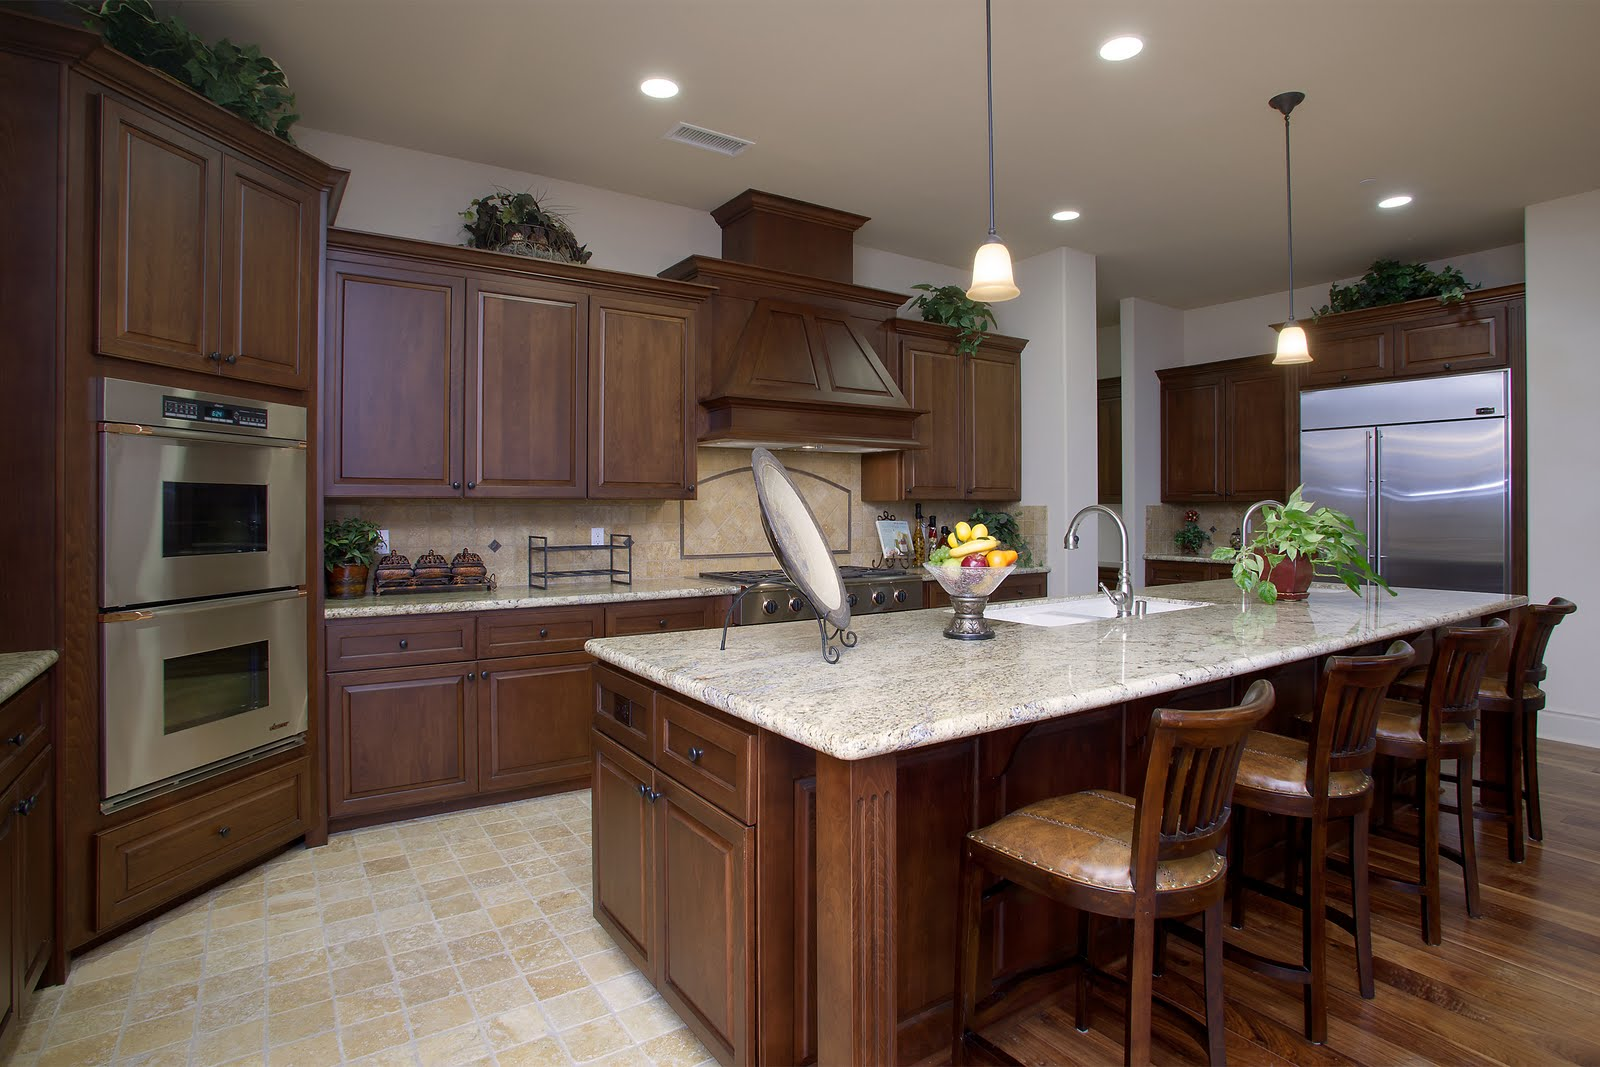 Kitchen model homes kitchen design photos 2015 for Model kitchen